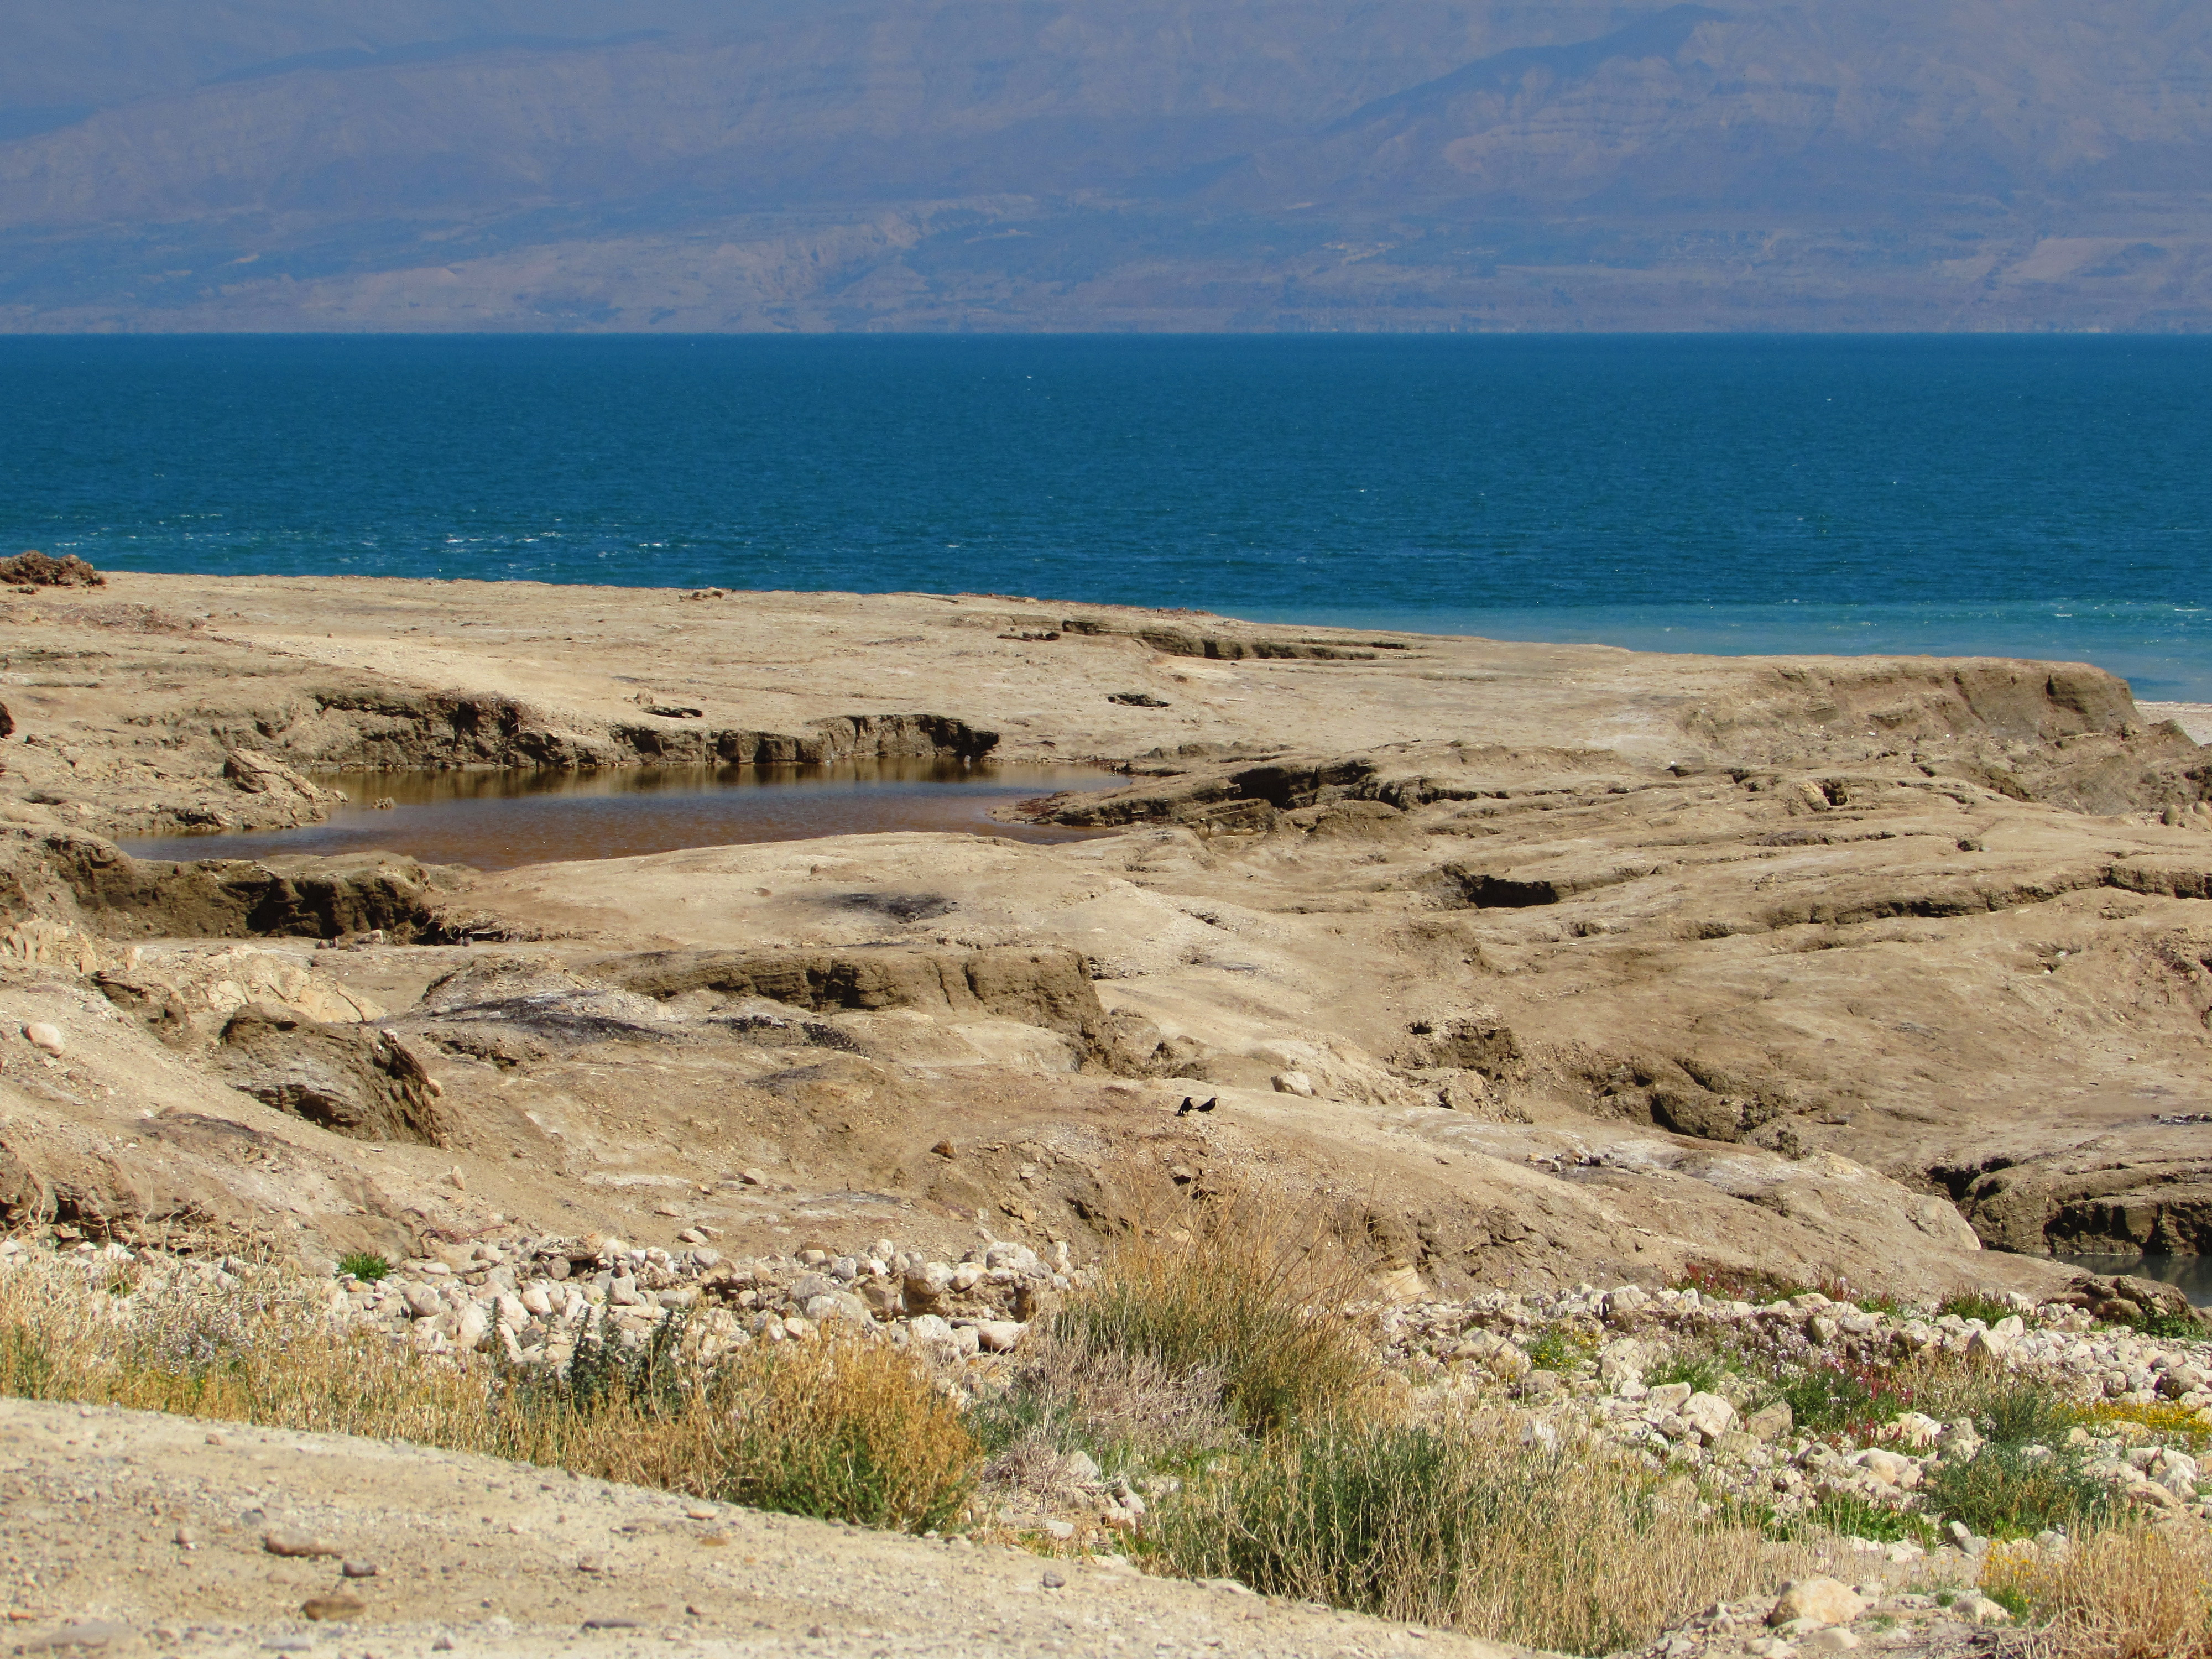 A hot spring near the Dead Sea, which is the lowest place geographically on earth